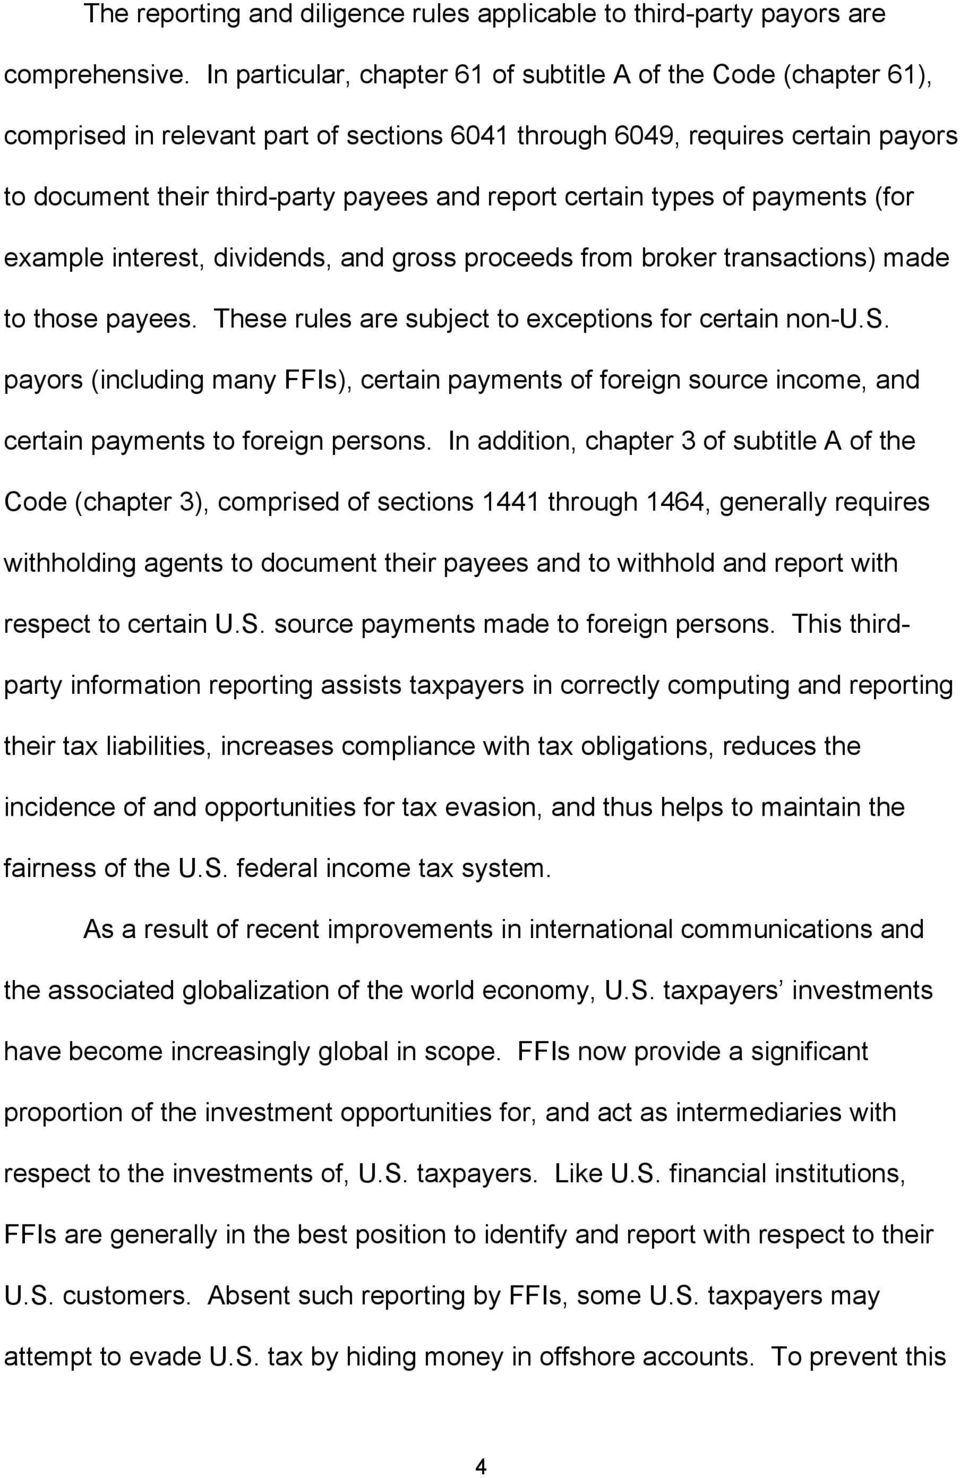 certain types of payments (for example interest, dividends, and gross proceeds from broker transactions) made to those payees. These rules are subject to exceptions for certain non-u.s. payors (including many FFIs), certain payments of foreign source income, and certain payments to foreign persons.